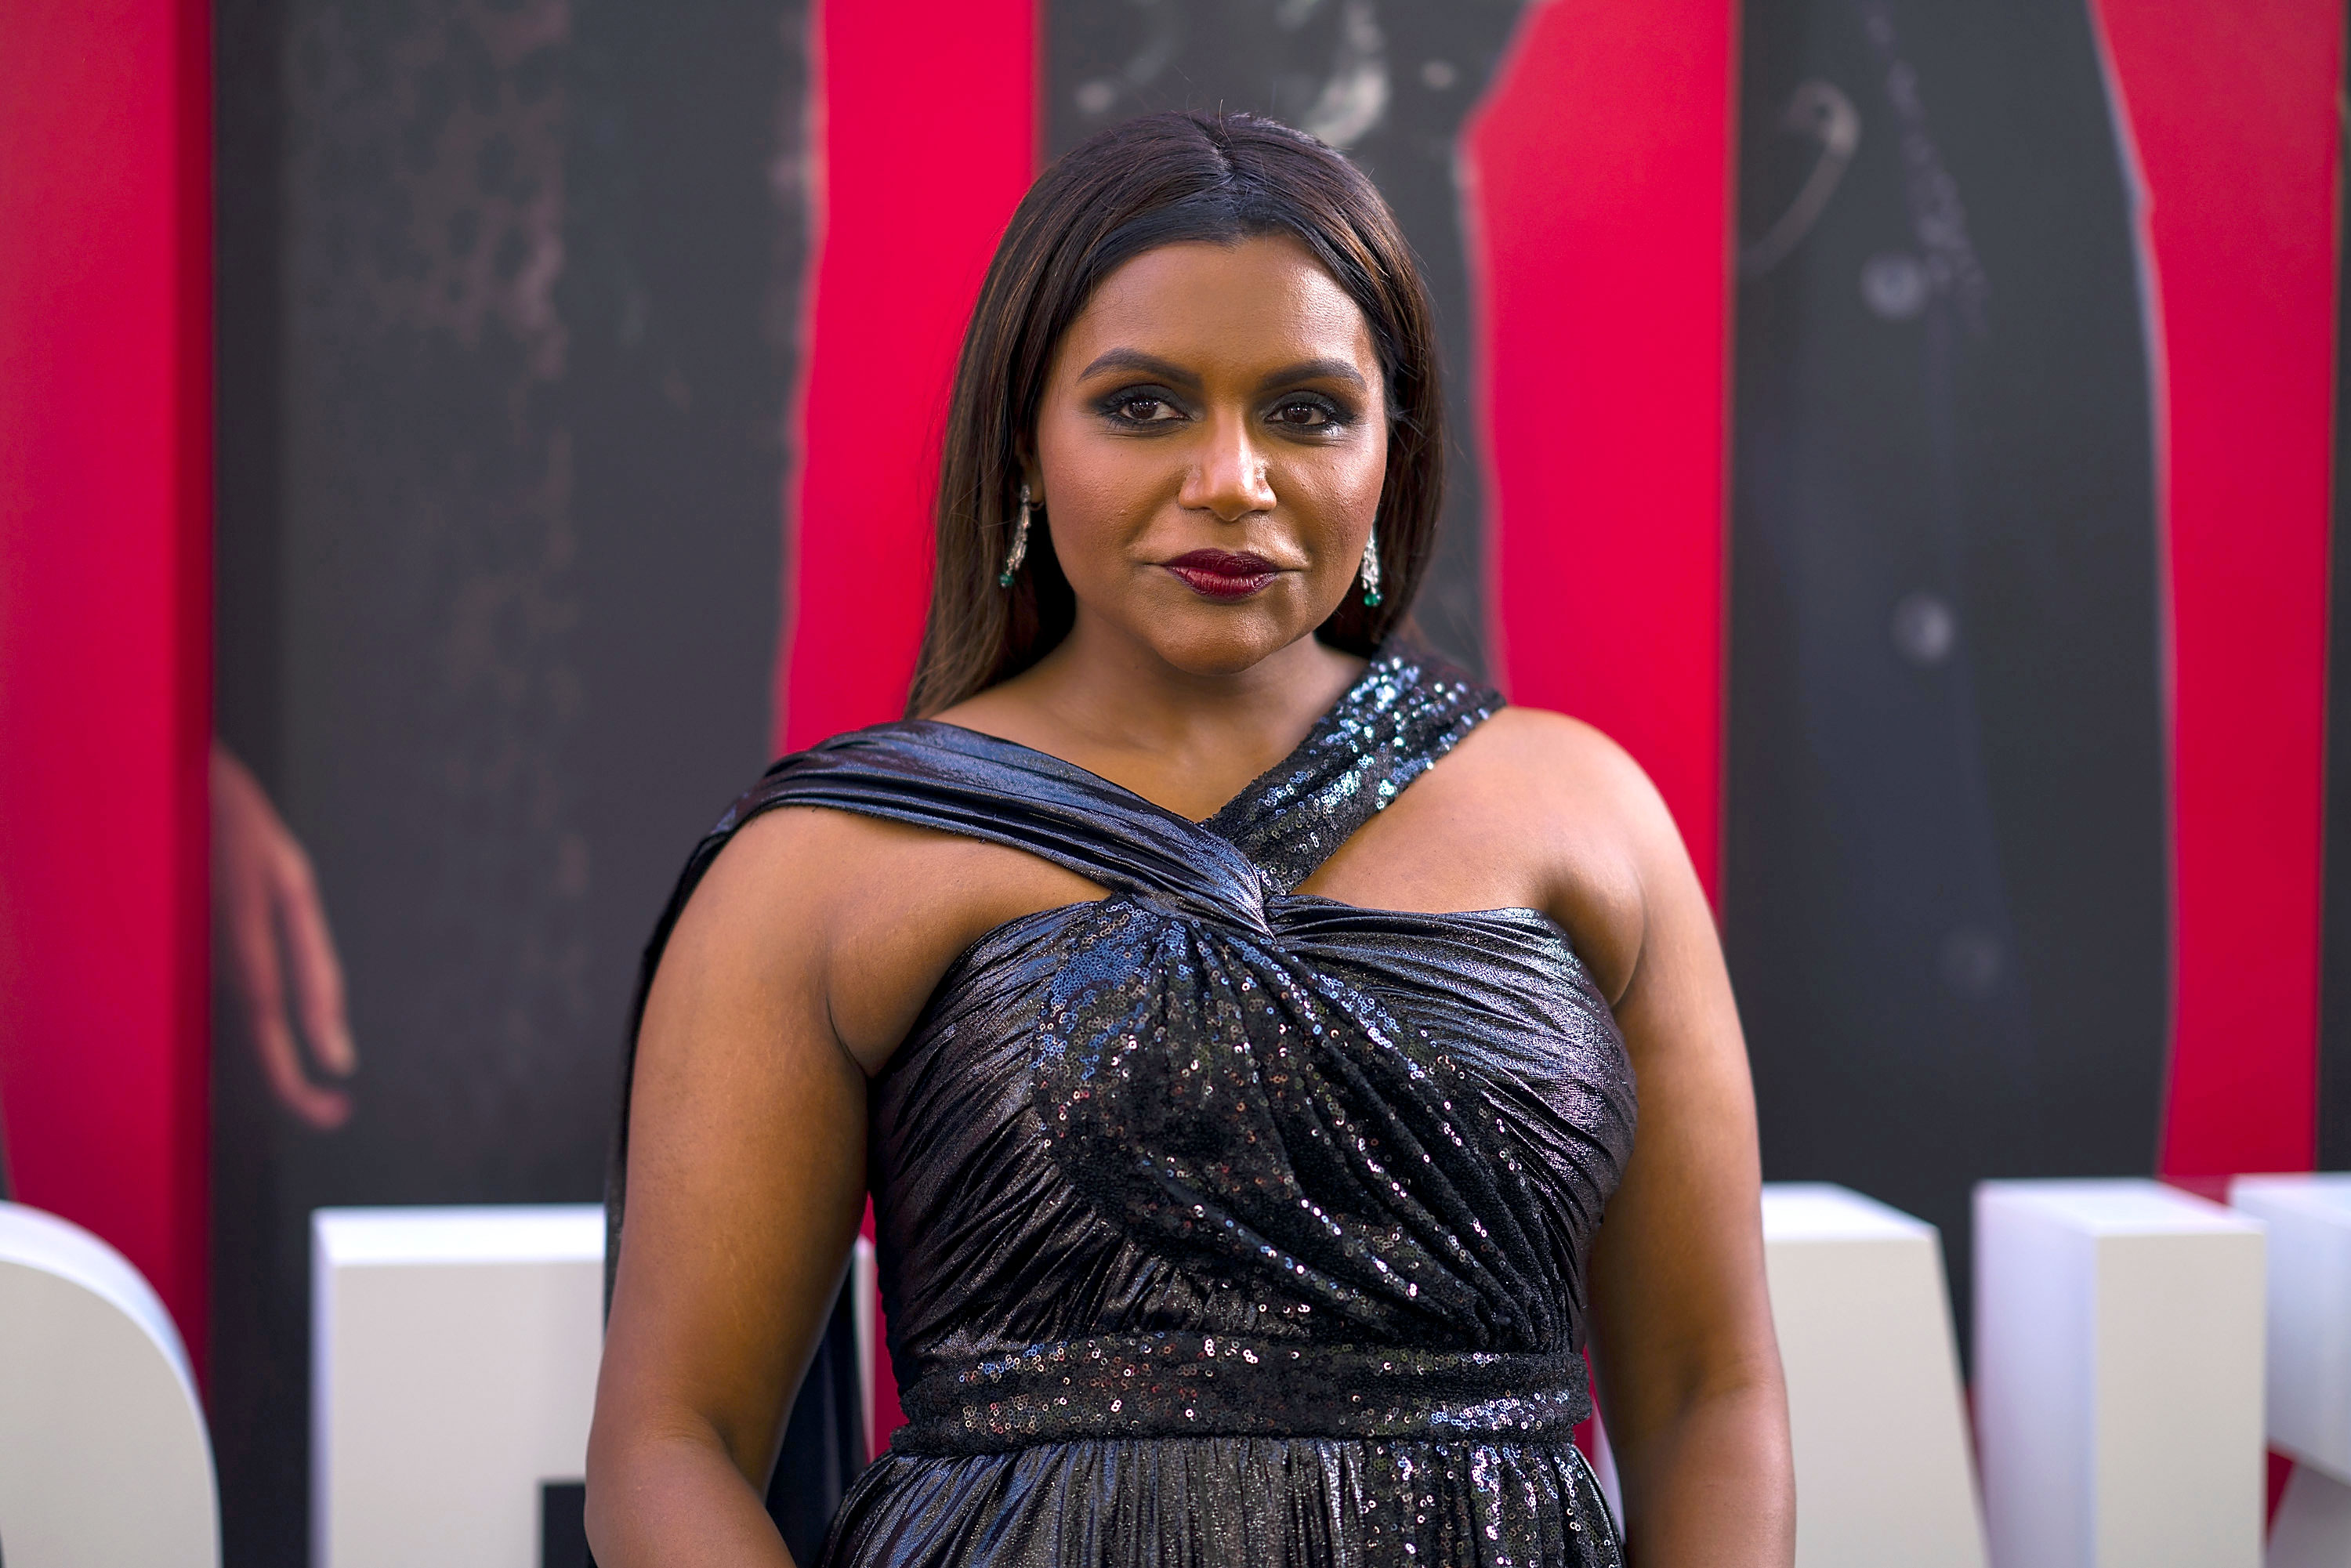 """Mindy Kaling React Sri Lanka Bombings - Mindy Kaling attends the """"Ocean's 8"""" World Premiere at Alice Tully Hall on June 5, 2018 in New York City."""